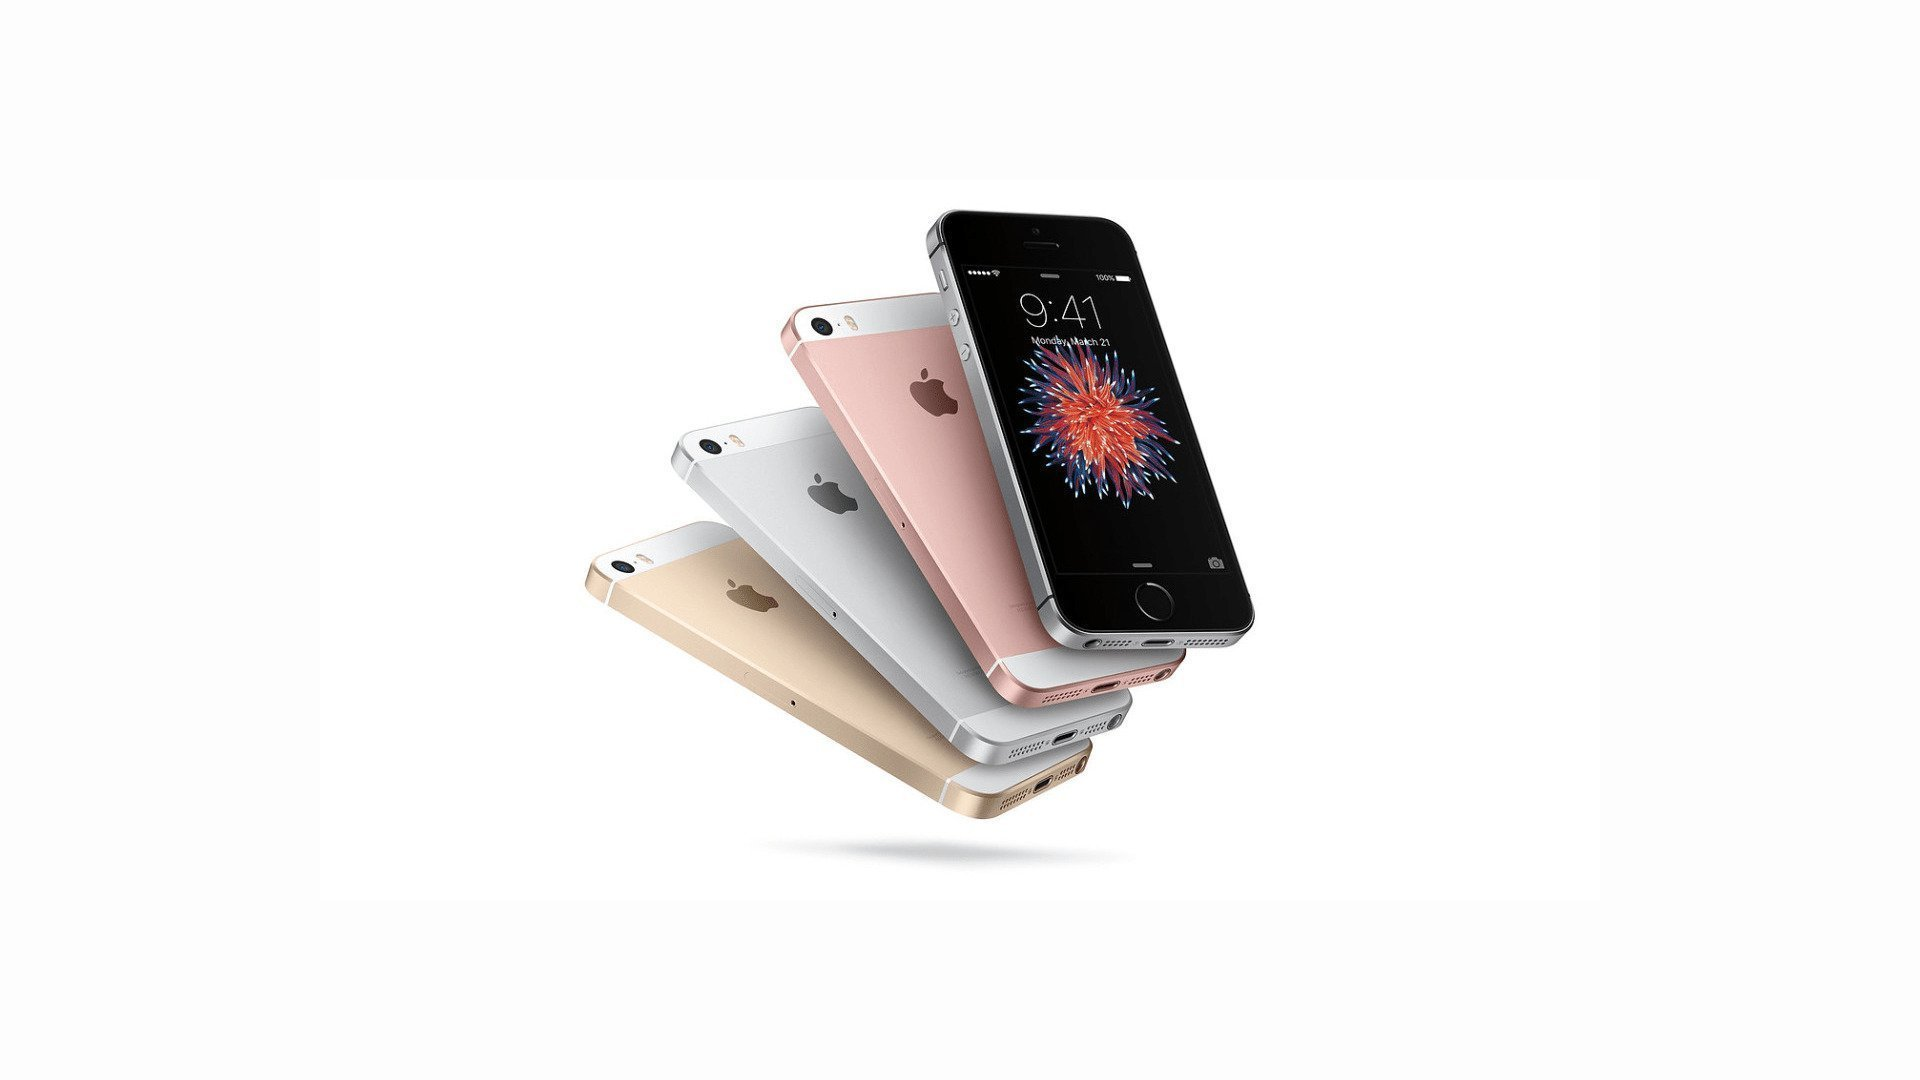 Apple iPhone SE (2020) a.k.a iPhone 9 - Stock Image